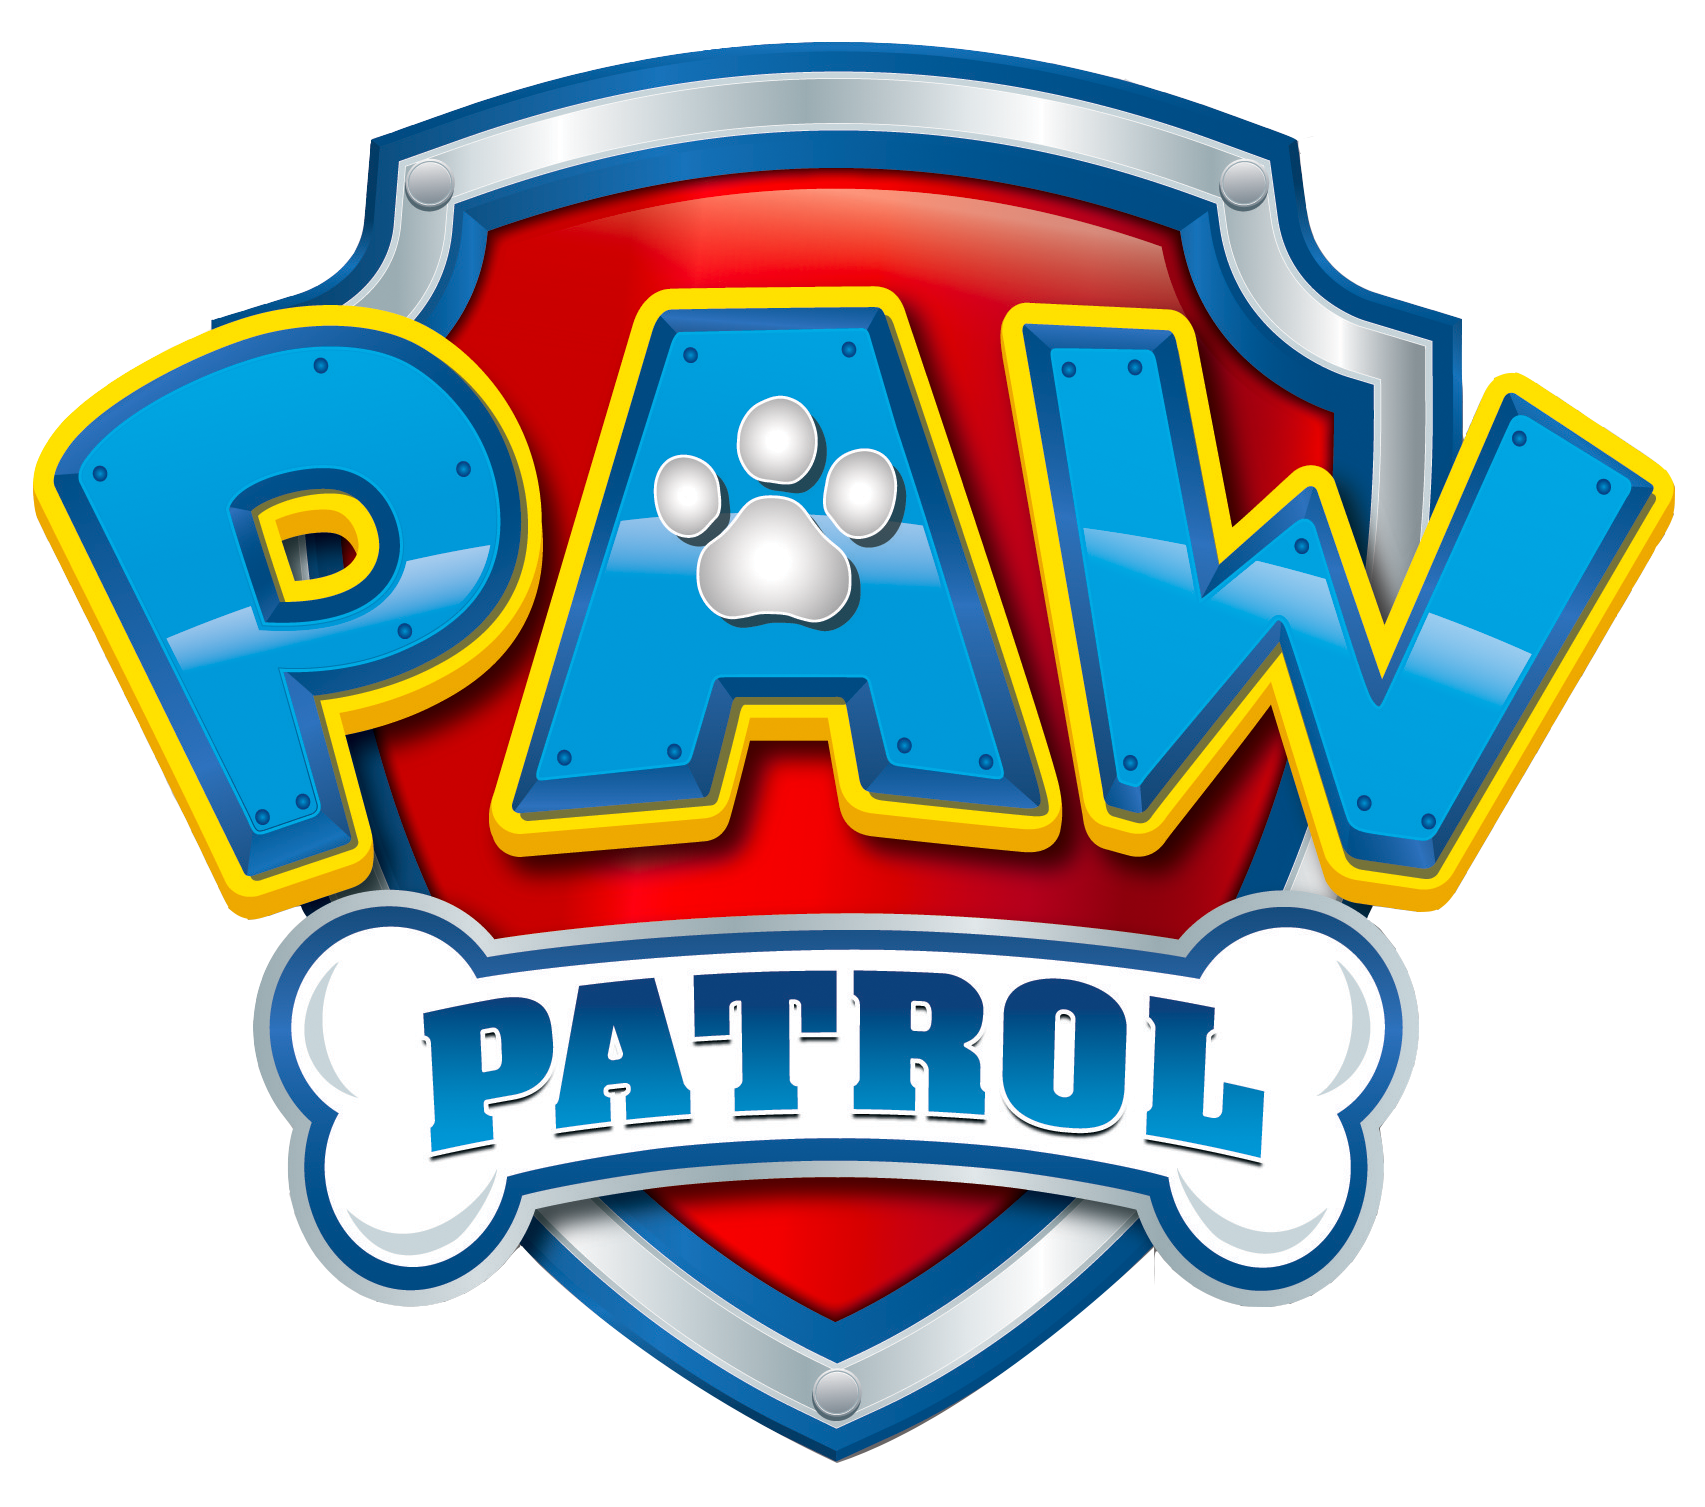 Patrol logo png no. Paw clipart clear background